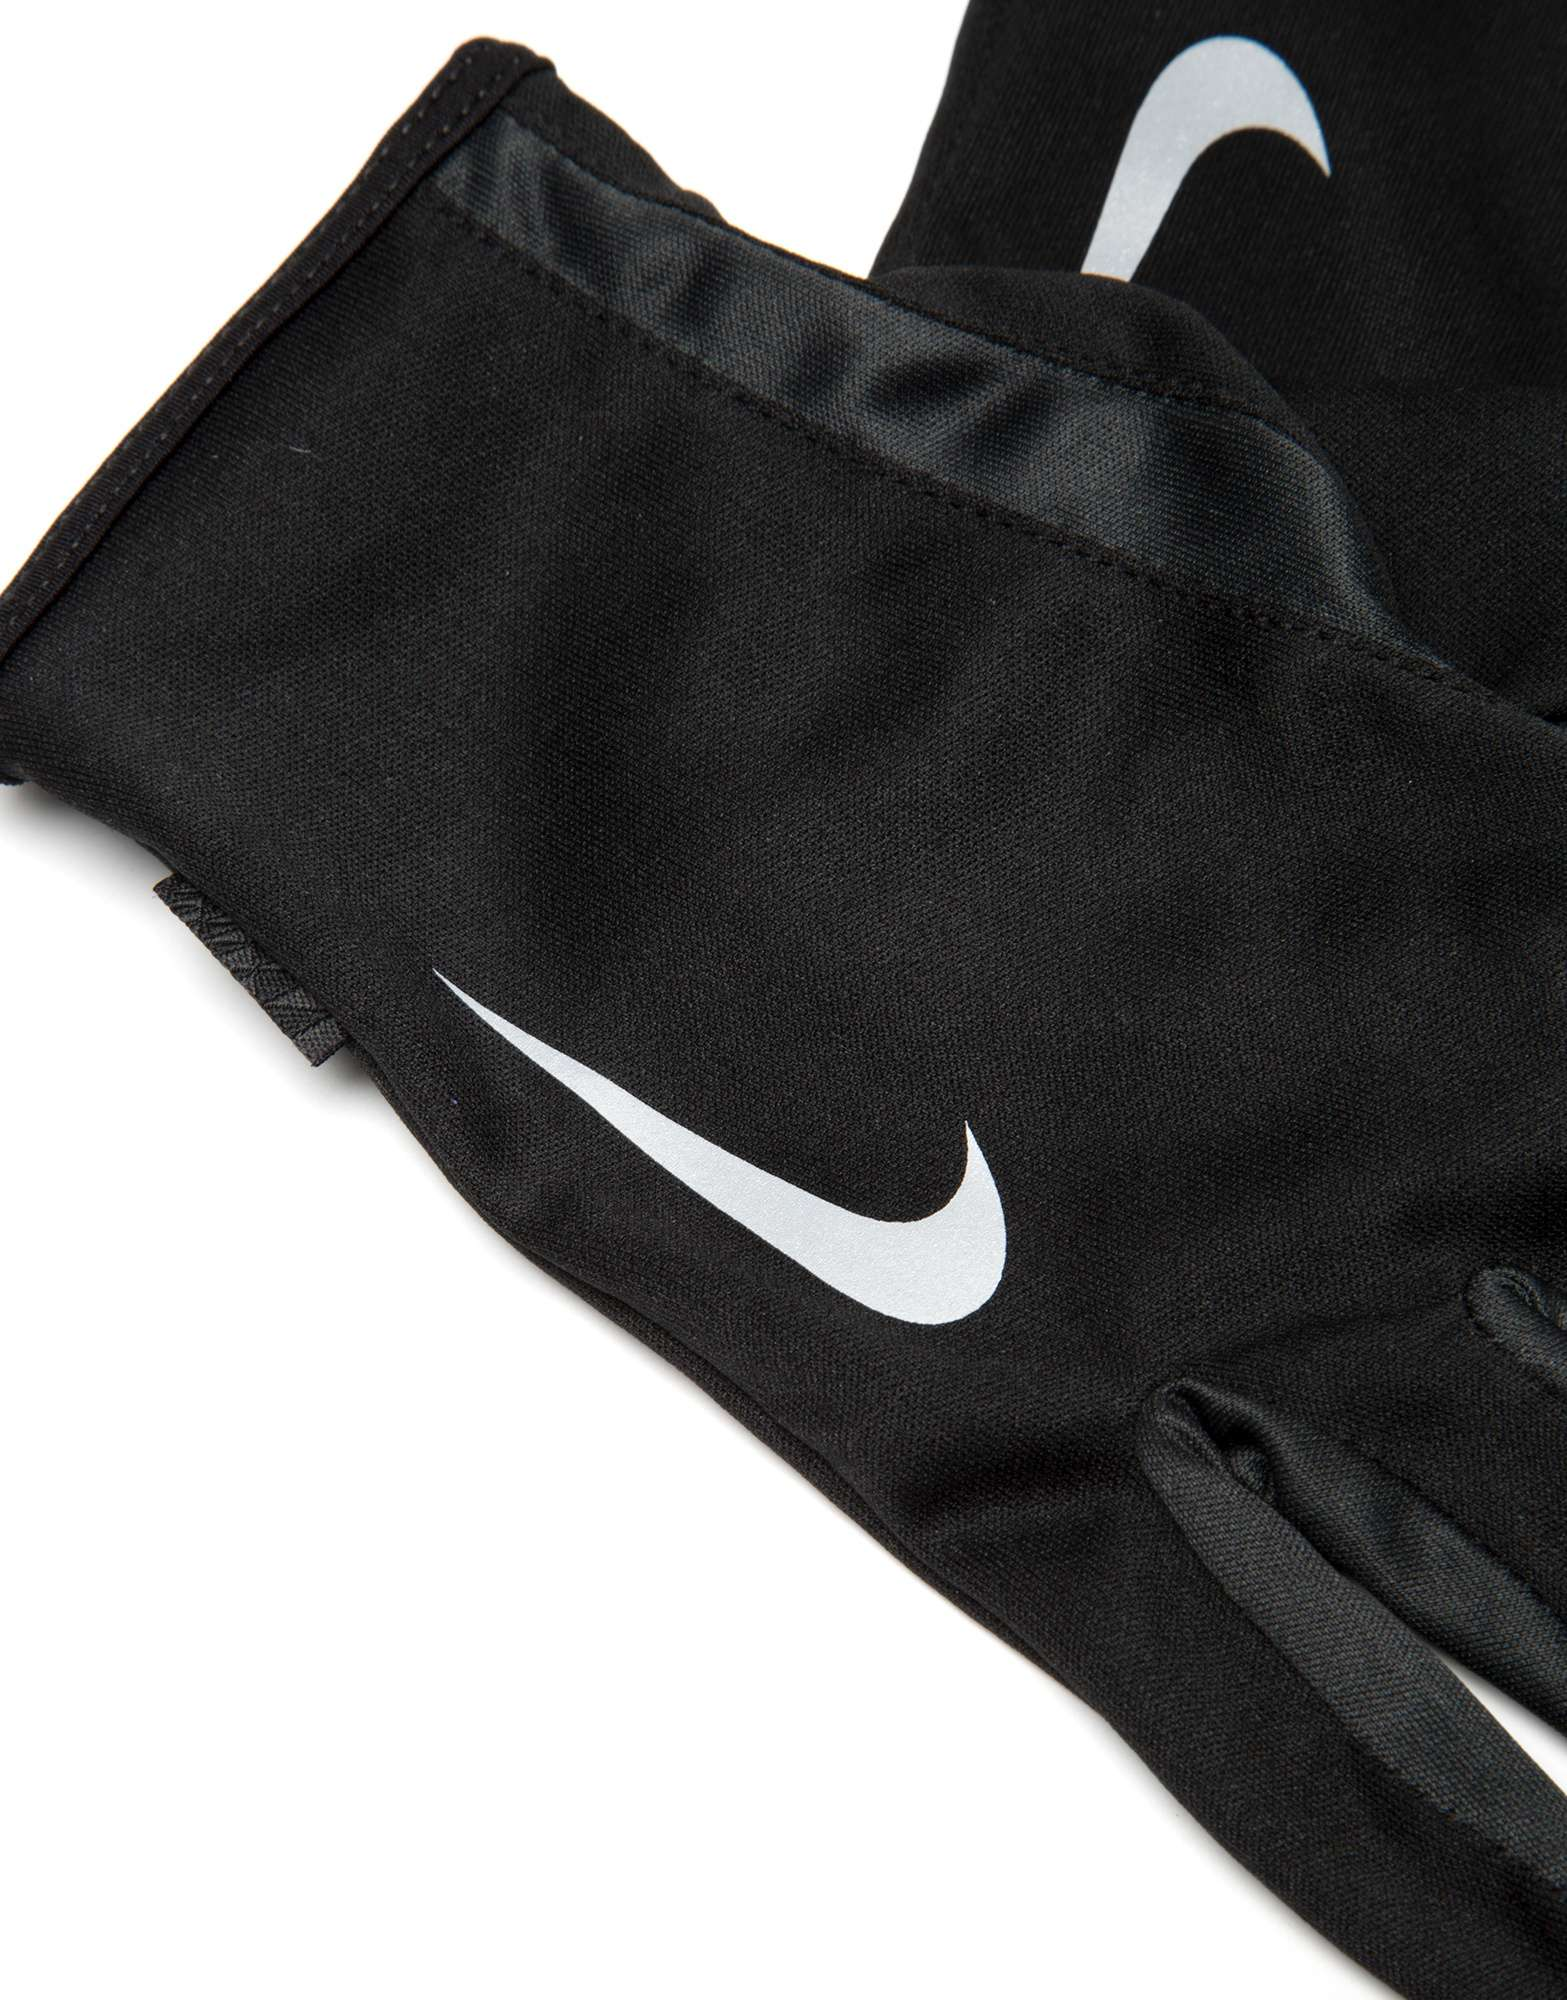 Nike Swift Running Gloves